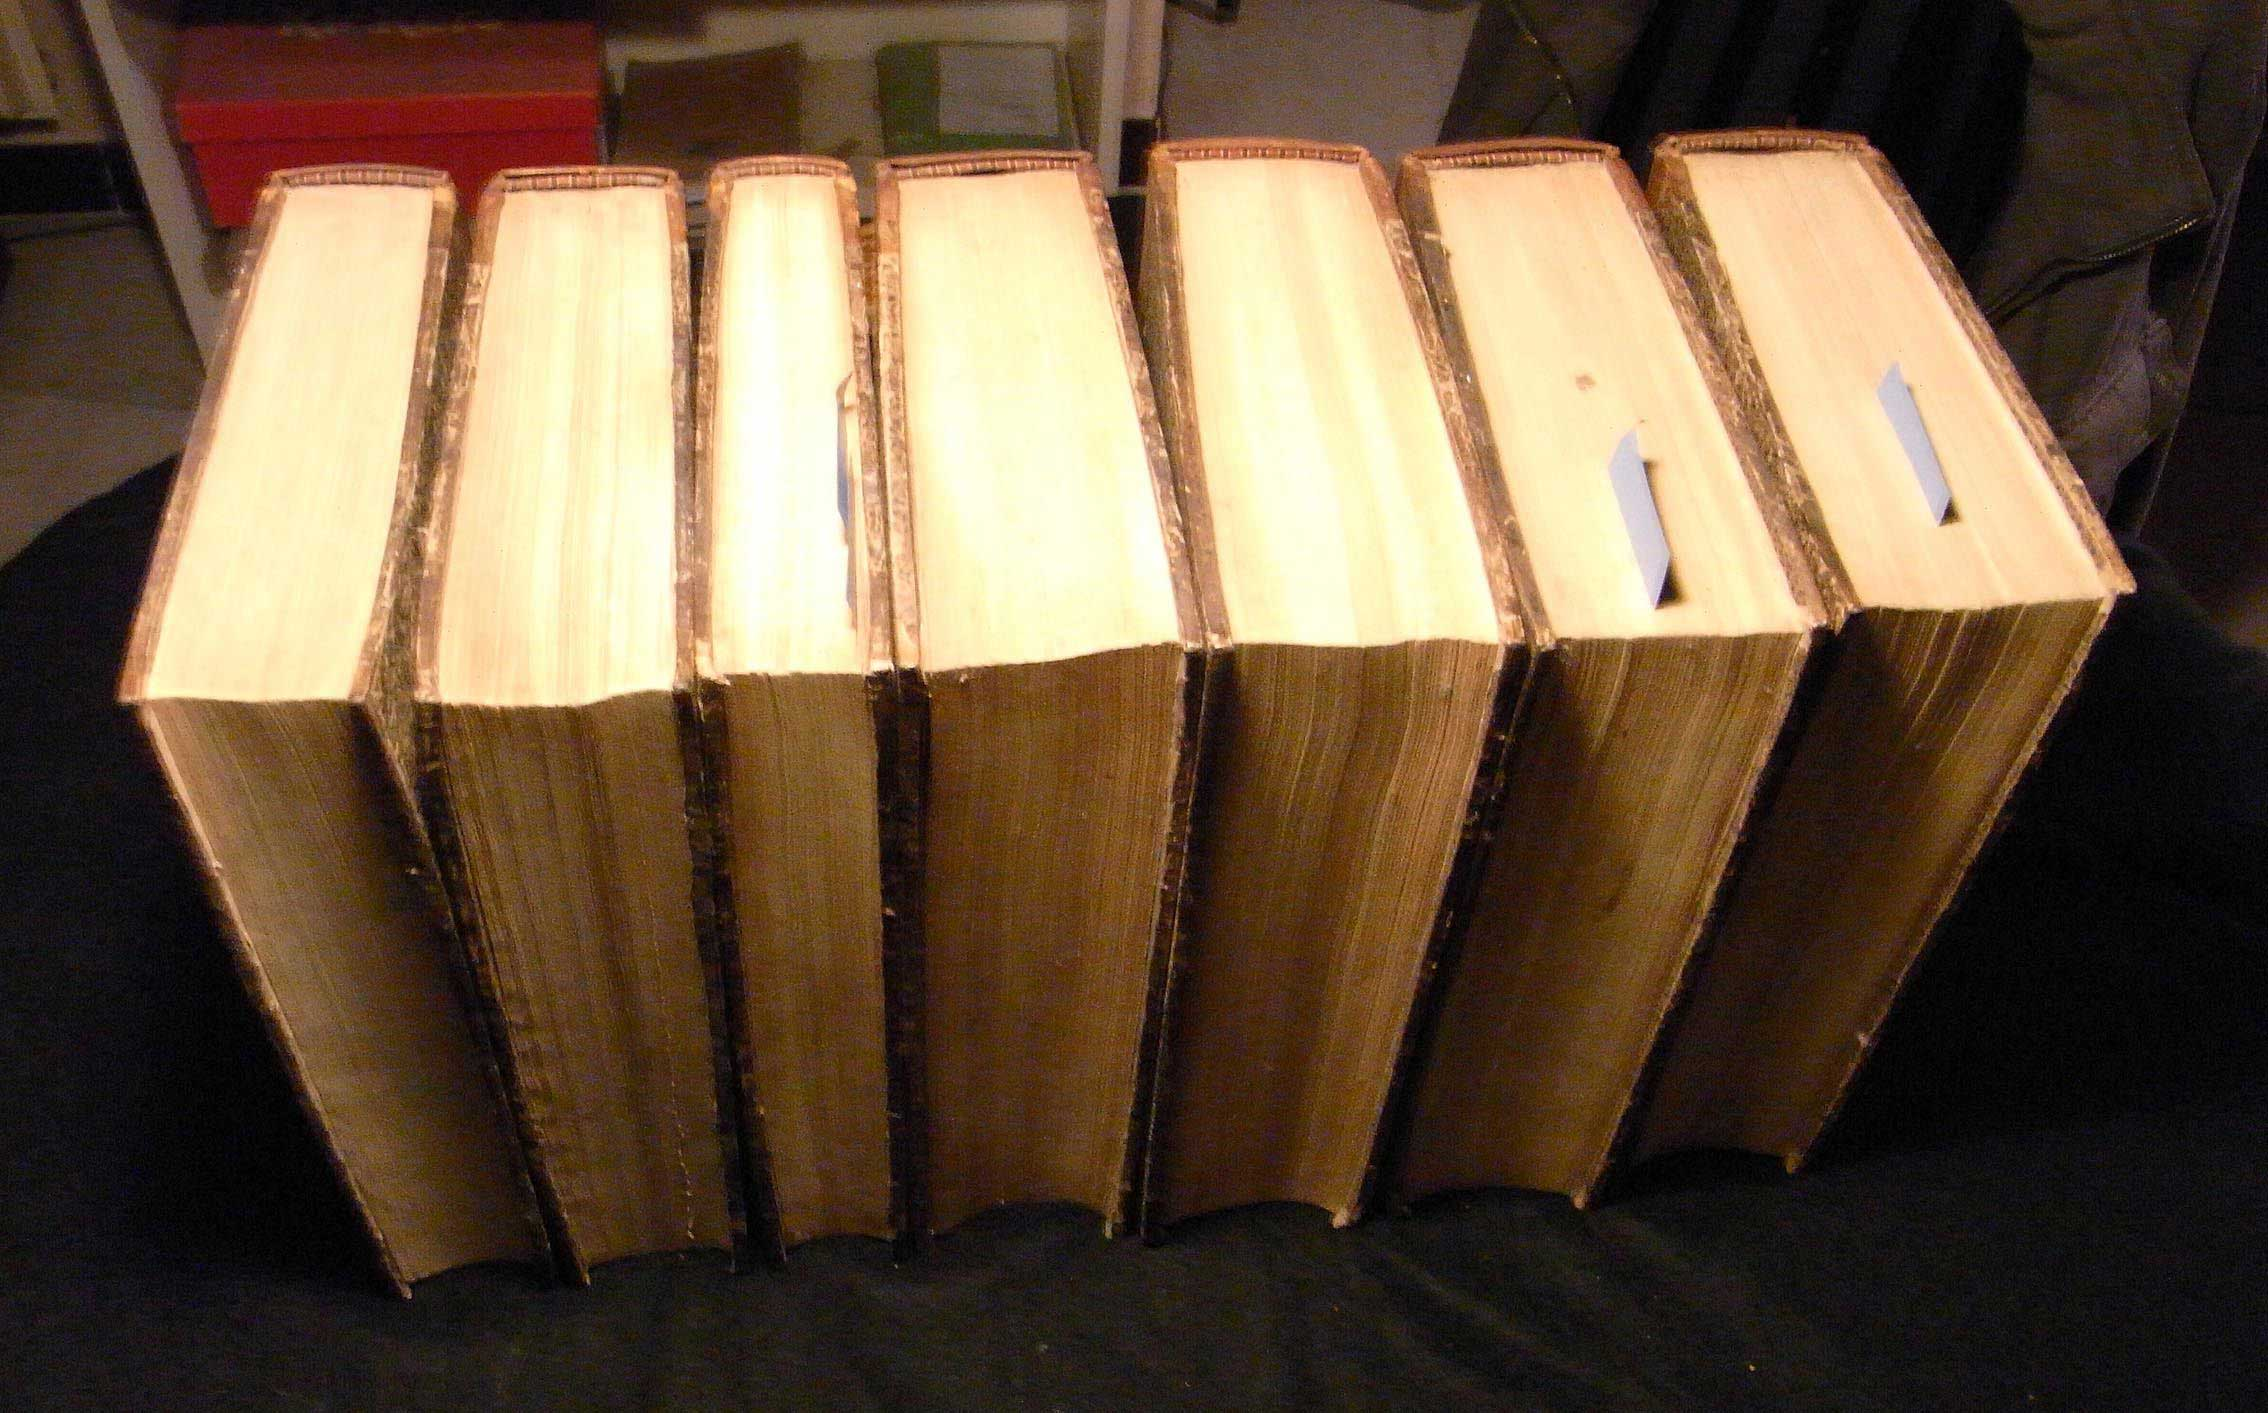 Dictionnaire-pittoresque-7-vol-tranches.jpg